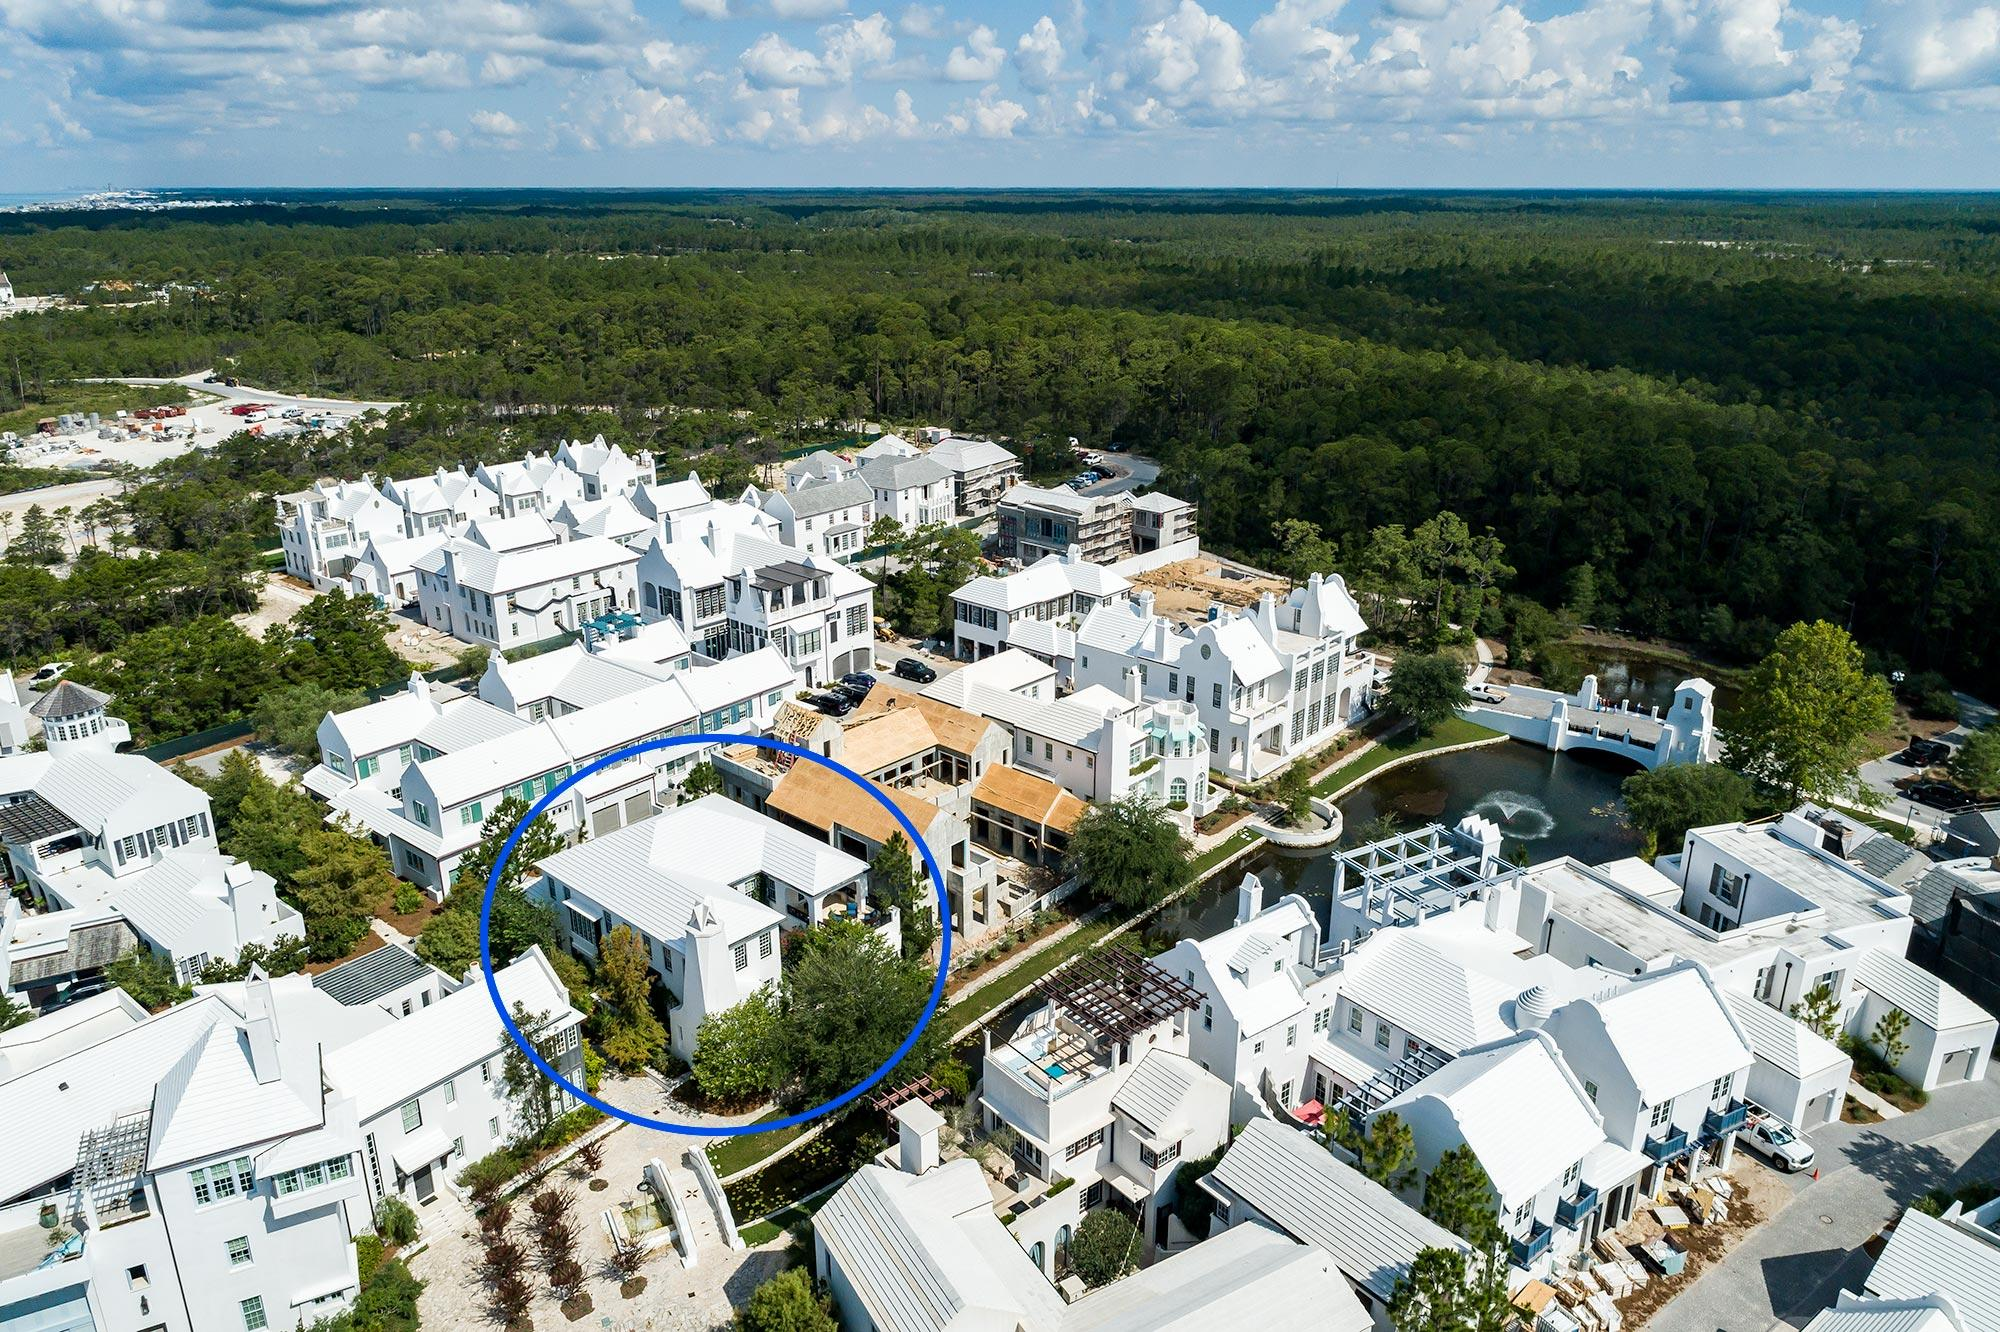 74 Butterwood Aly D1, Alys Beach, FL, 32461